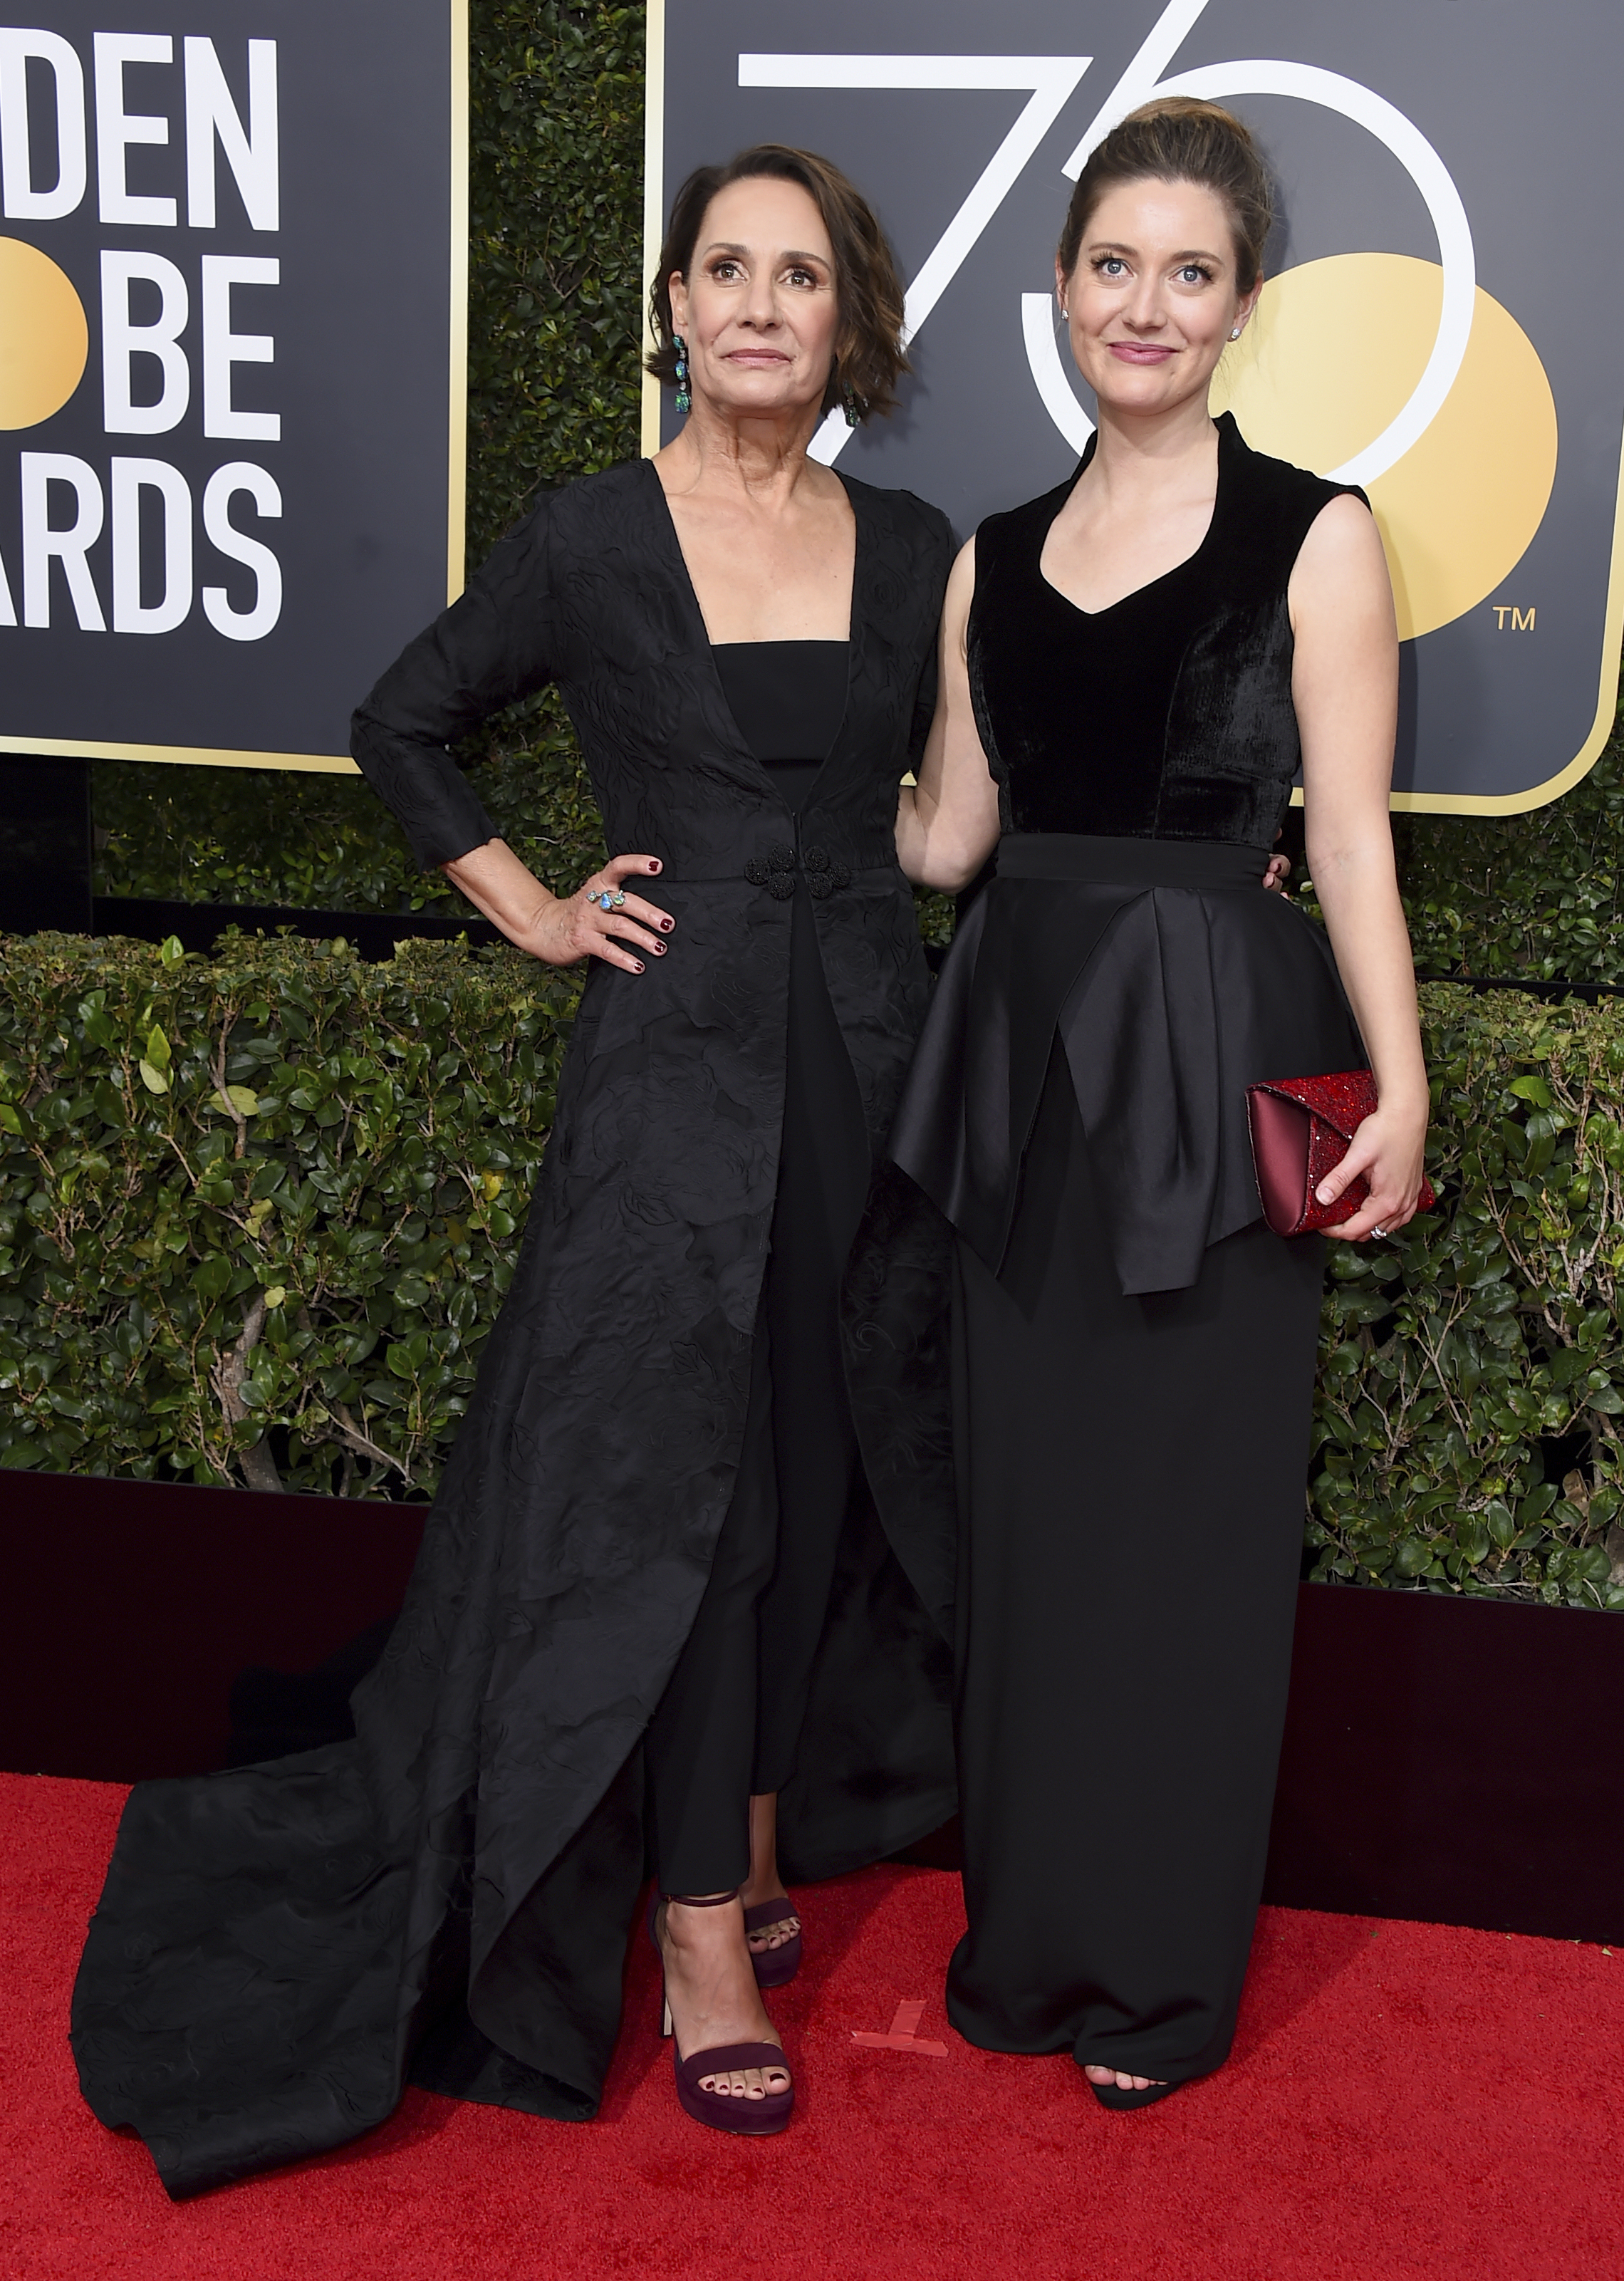 <div class='meta'><div class='origin-logo' data-origin='AP'></div><span class='caption-text' data-credit='Jordan Strauss/Invision/AP'>Laurie Metcalf, left, and her daughter Zoe Perry arrive at the 75th annual Golden Globe Awards at the Beverly Hilton Hotel on Sunday, Jan. 7, 2018, in Beverly Hills, Calif.</span></div>